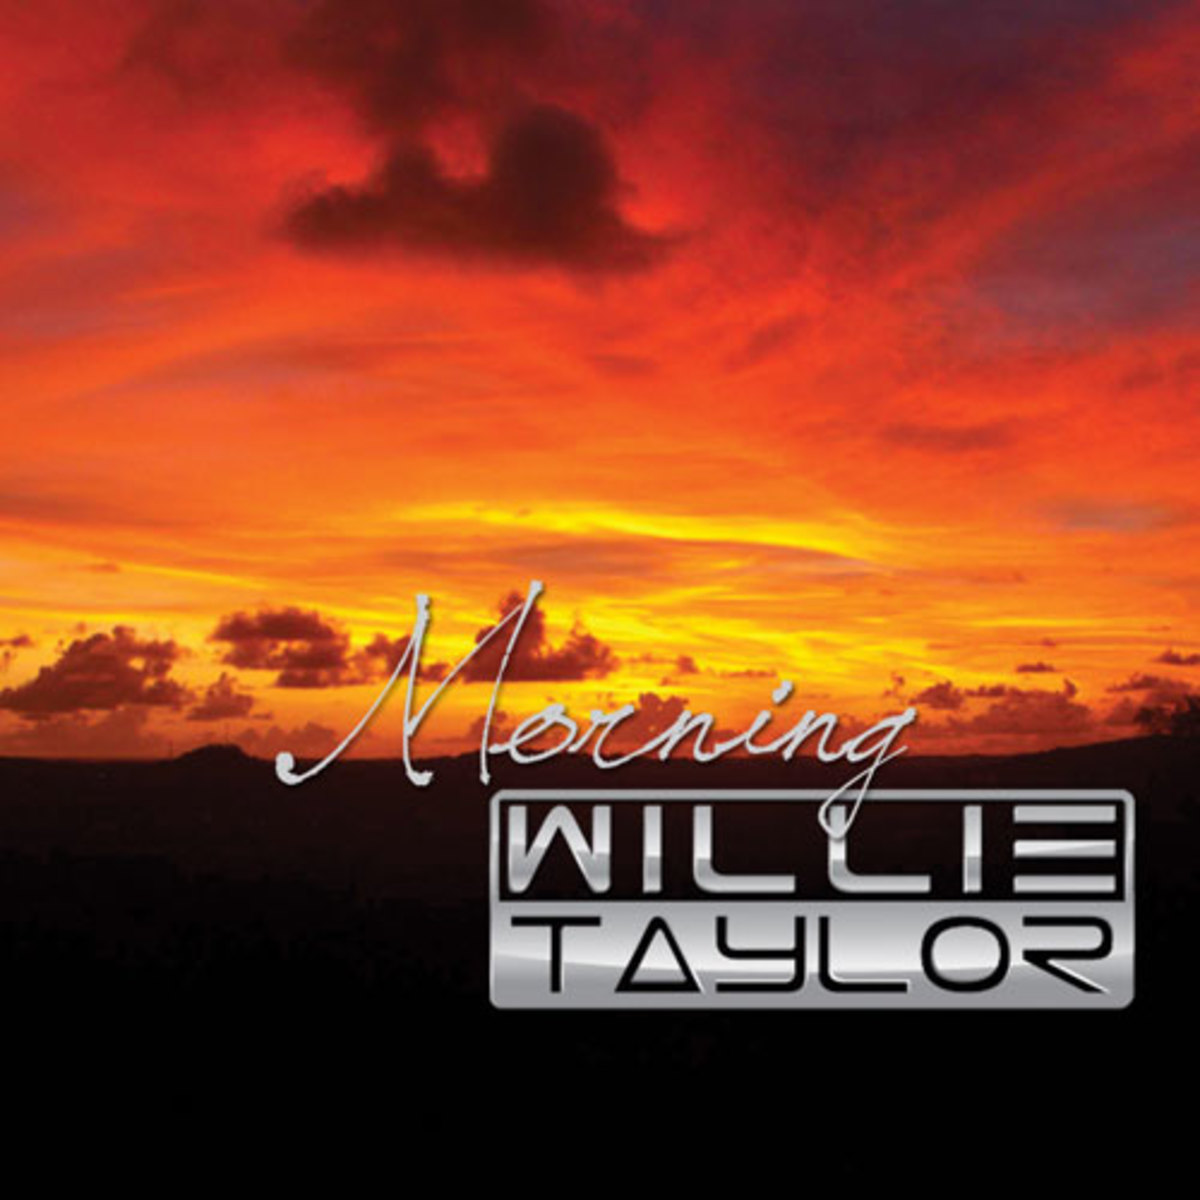 willietaylor-morning.jpg